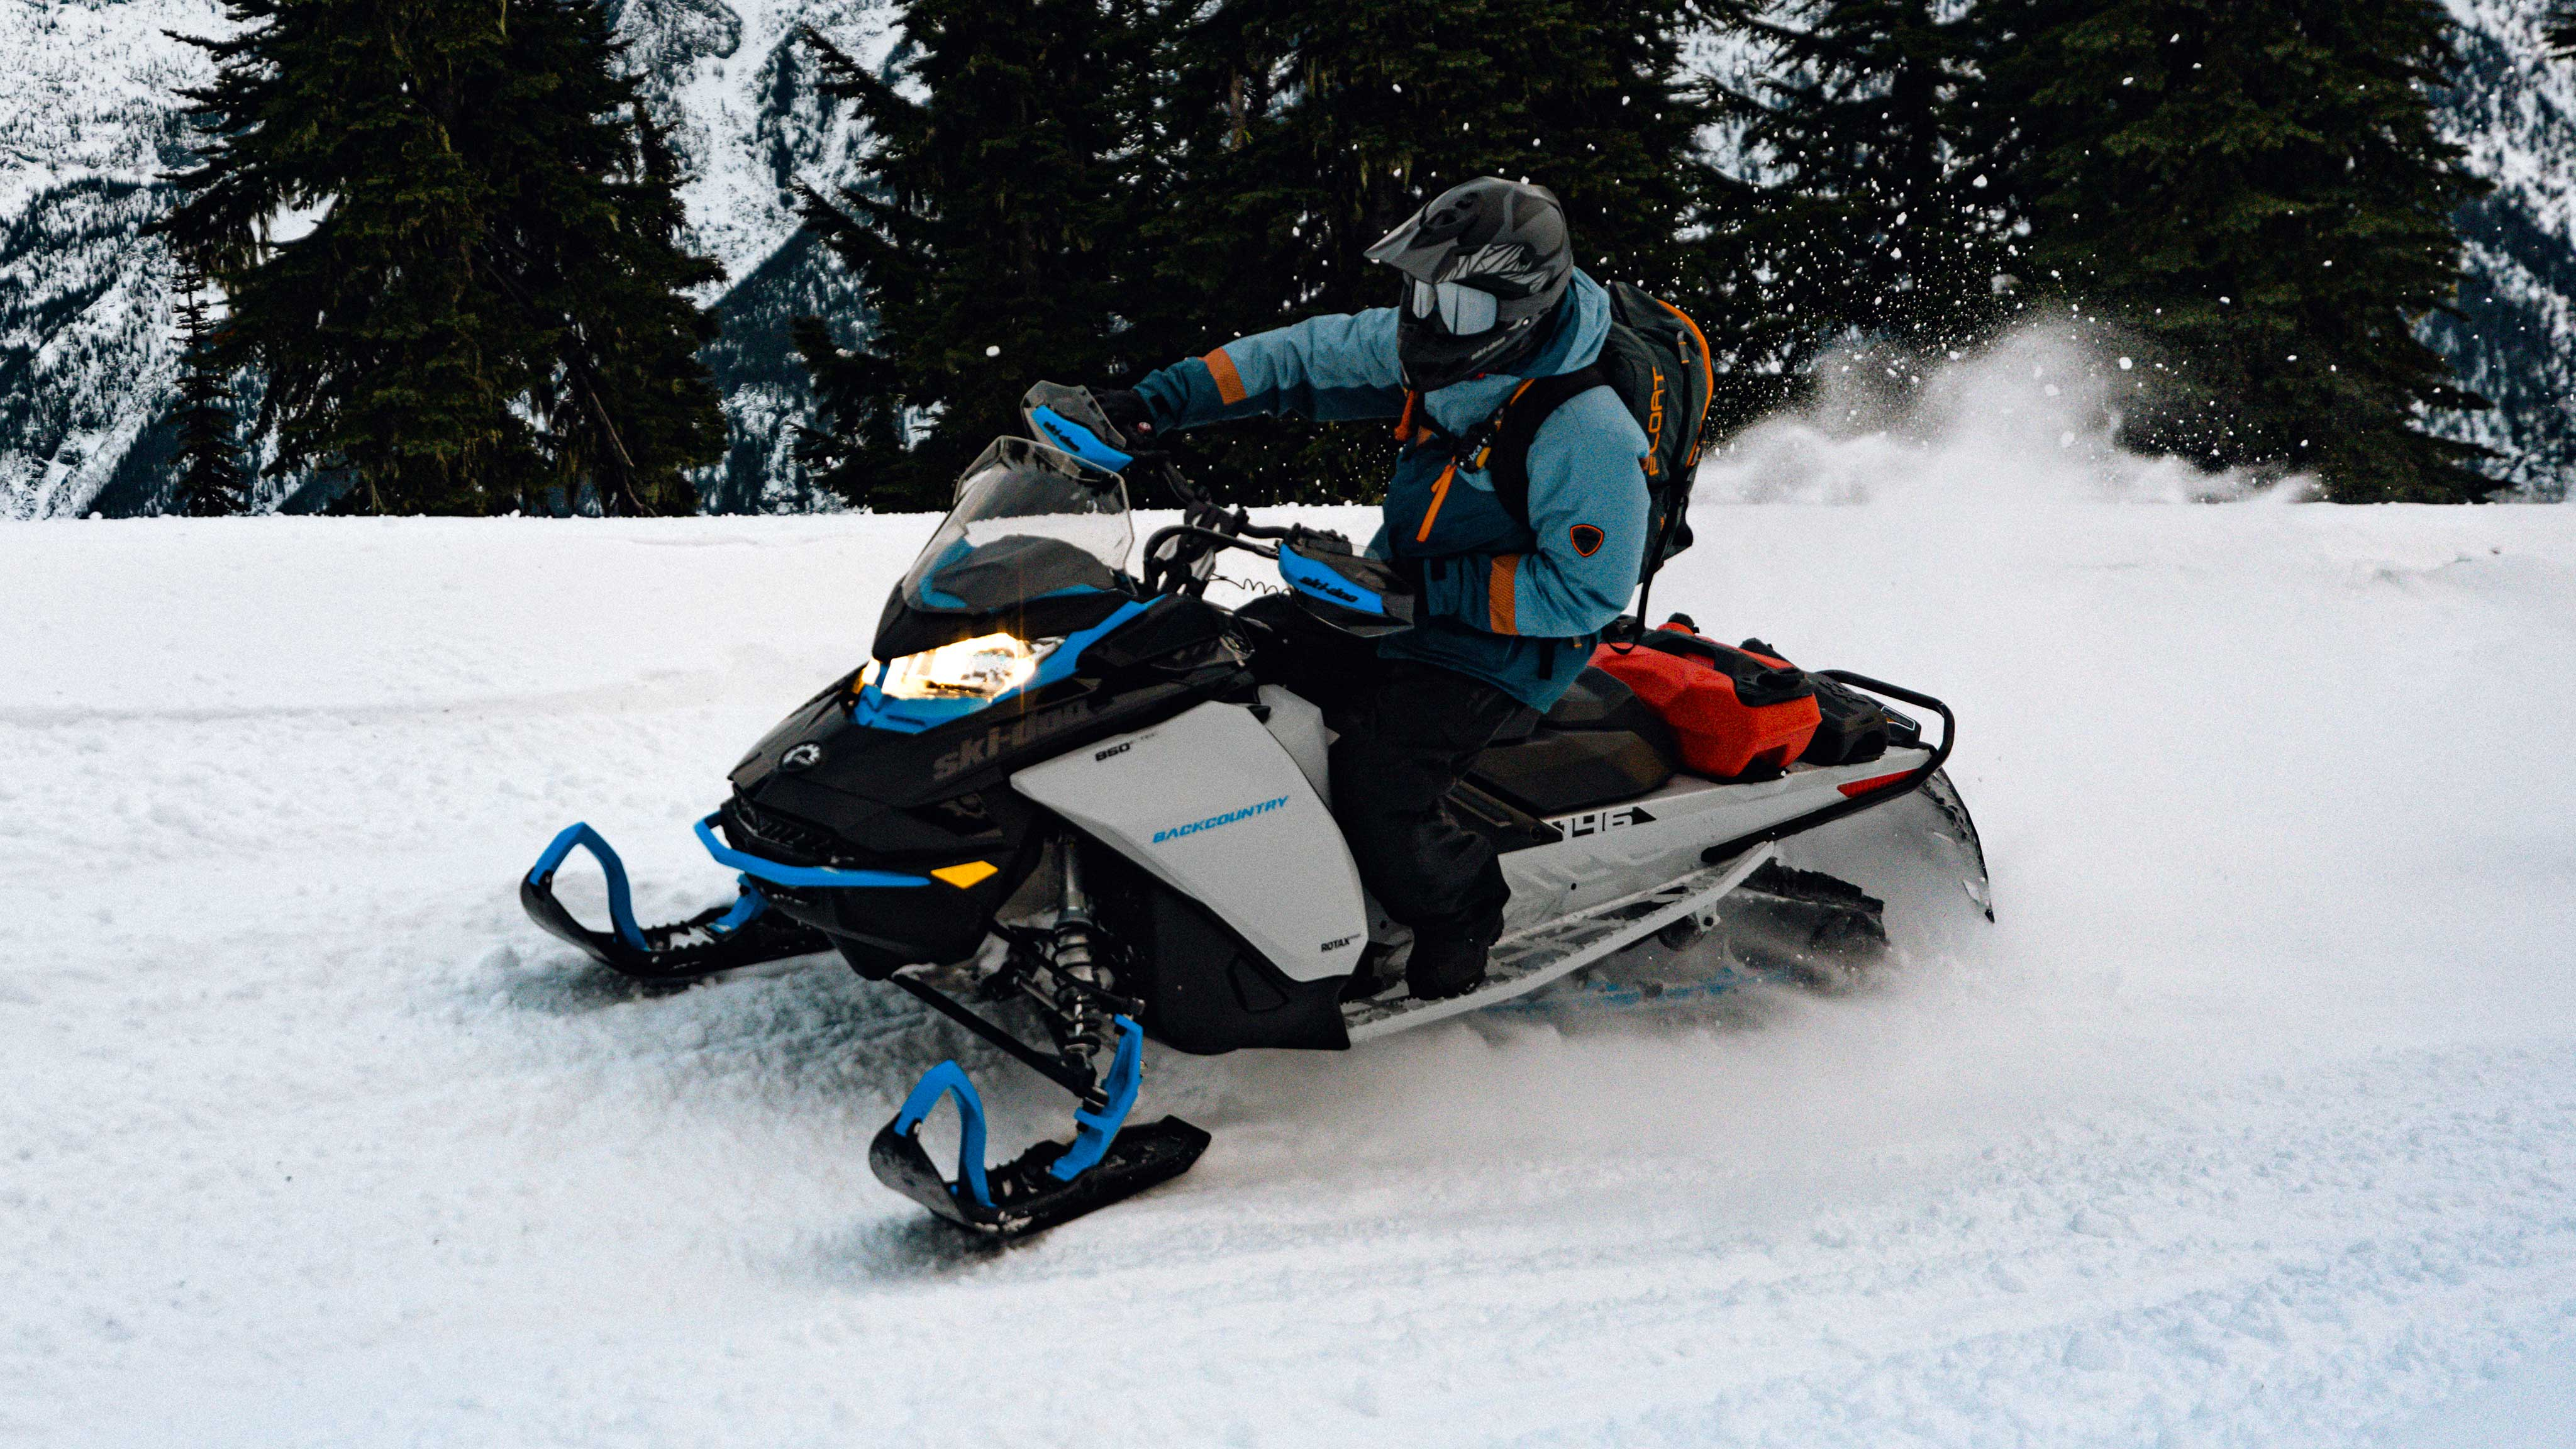 Man riding 2022 Ski-Doo Backcountry on a trail